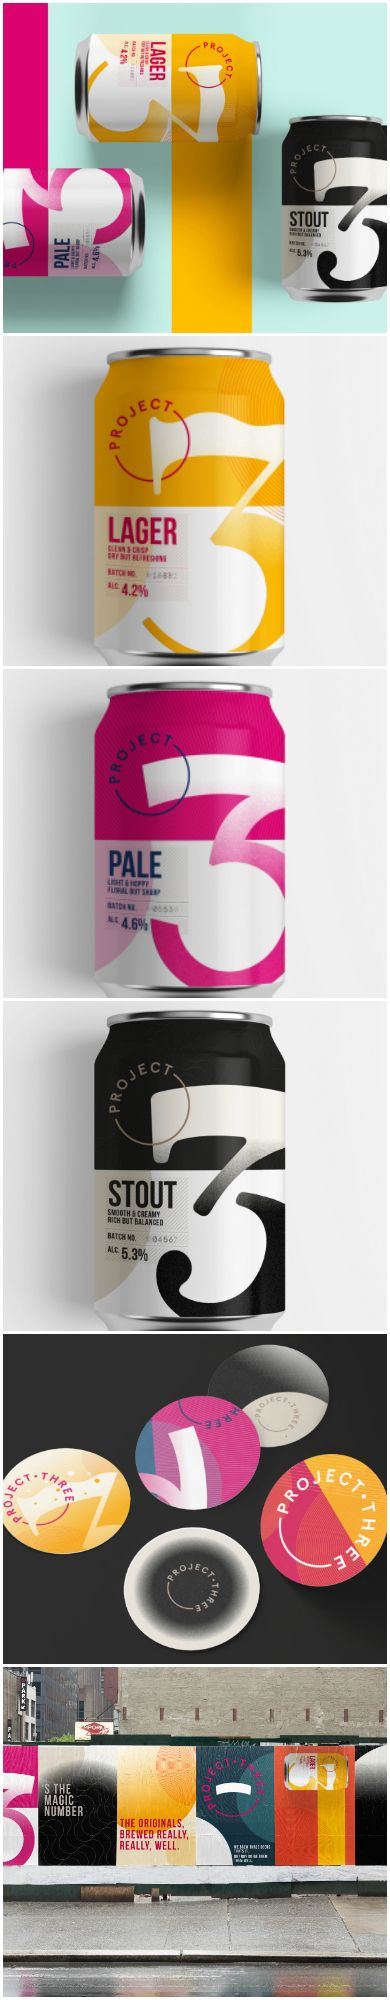 Project3 Packaging Design